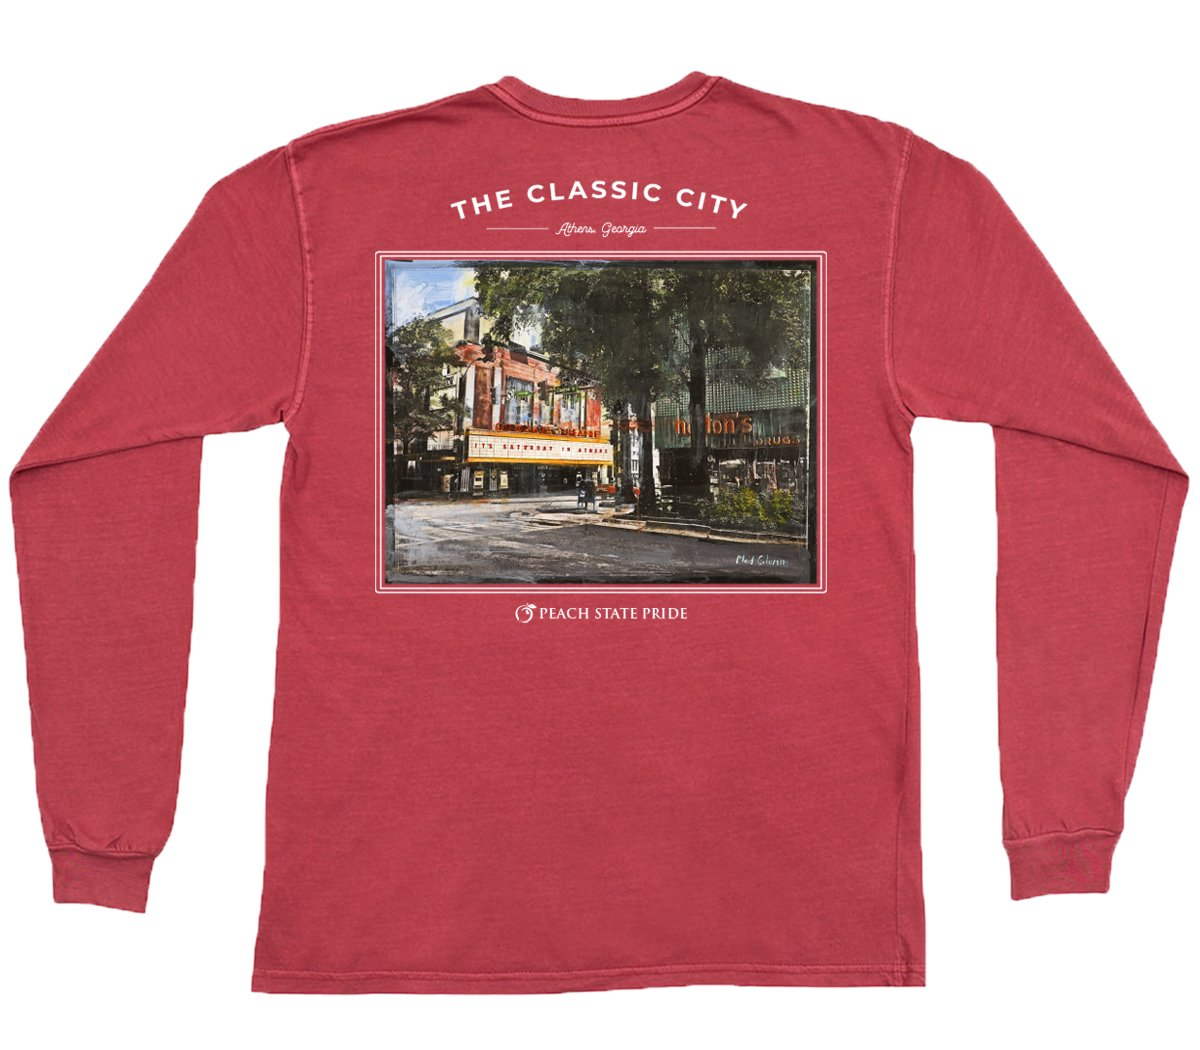 PEACH STATE PRIDE Men's Tees Peach State Pride The Clayton Street Long Sleeve Pocket Tee || David's Clothing